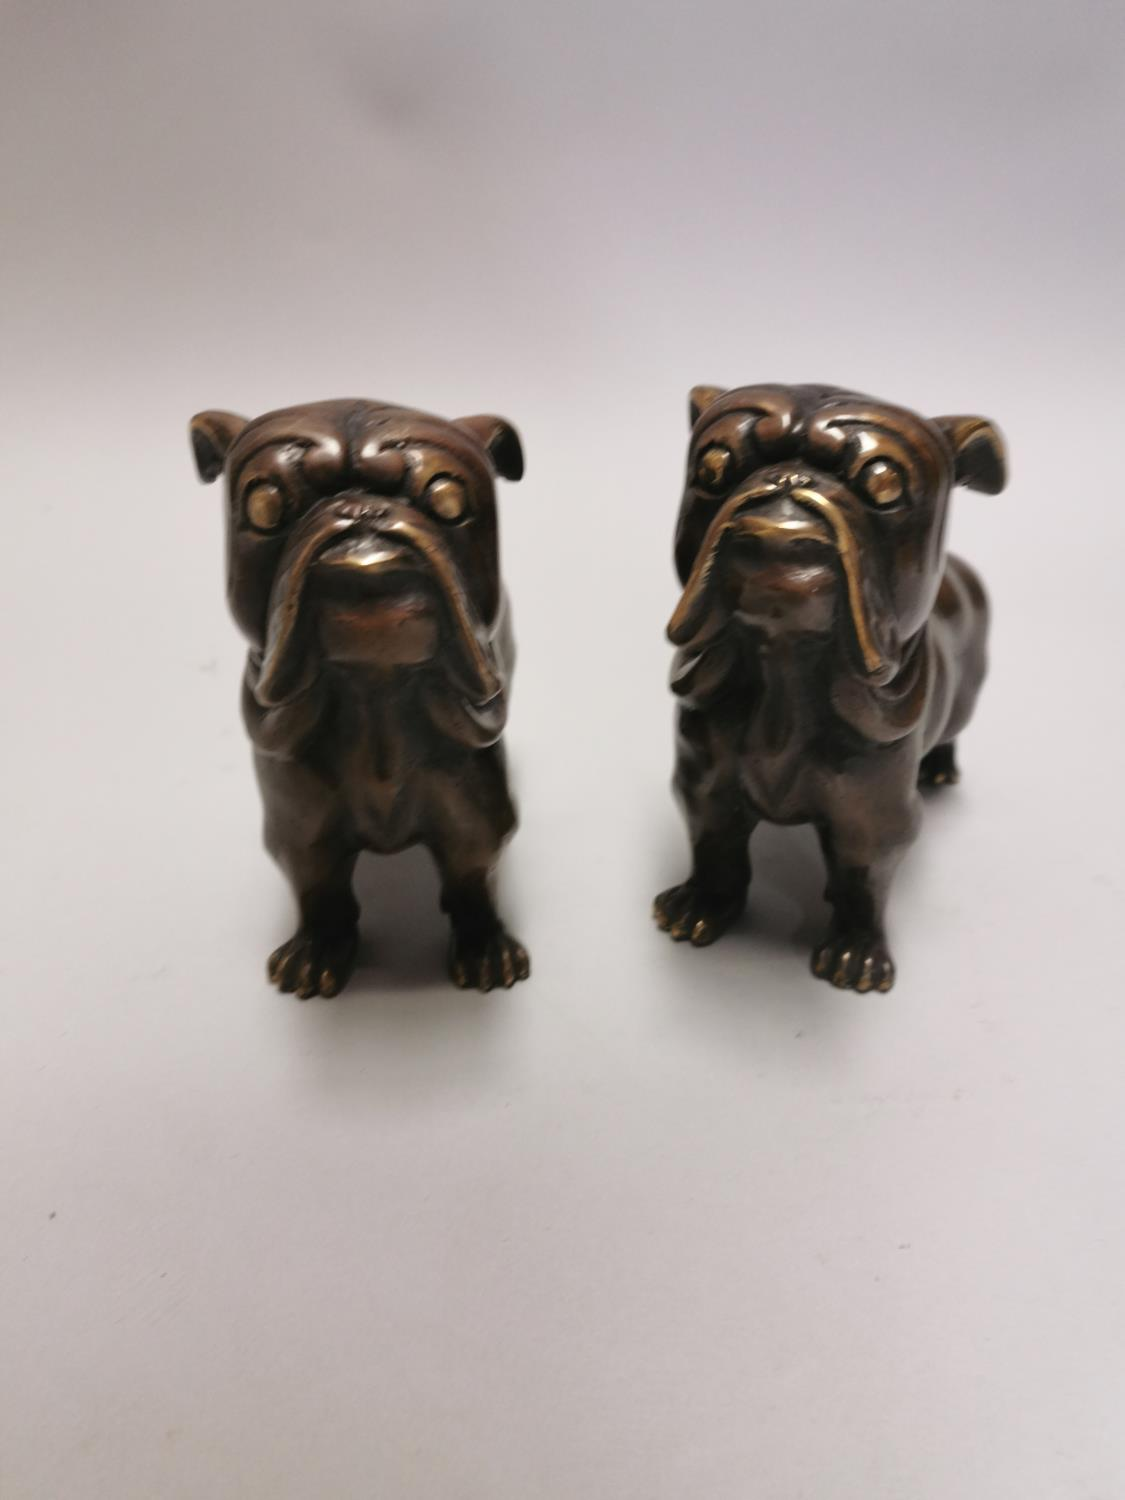 Pair of bronze models of pug dogs - Image 5 of 5